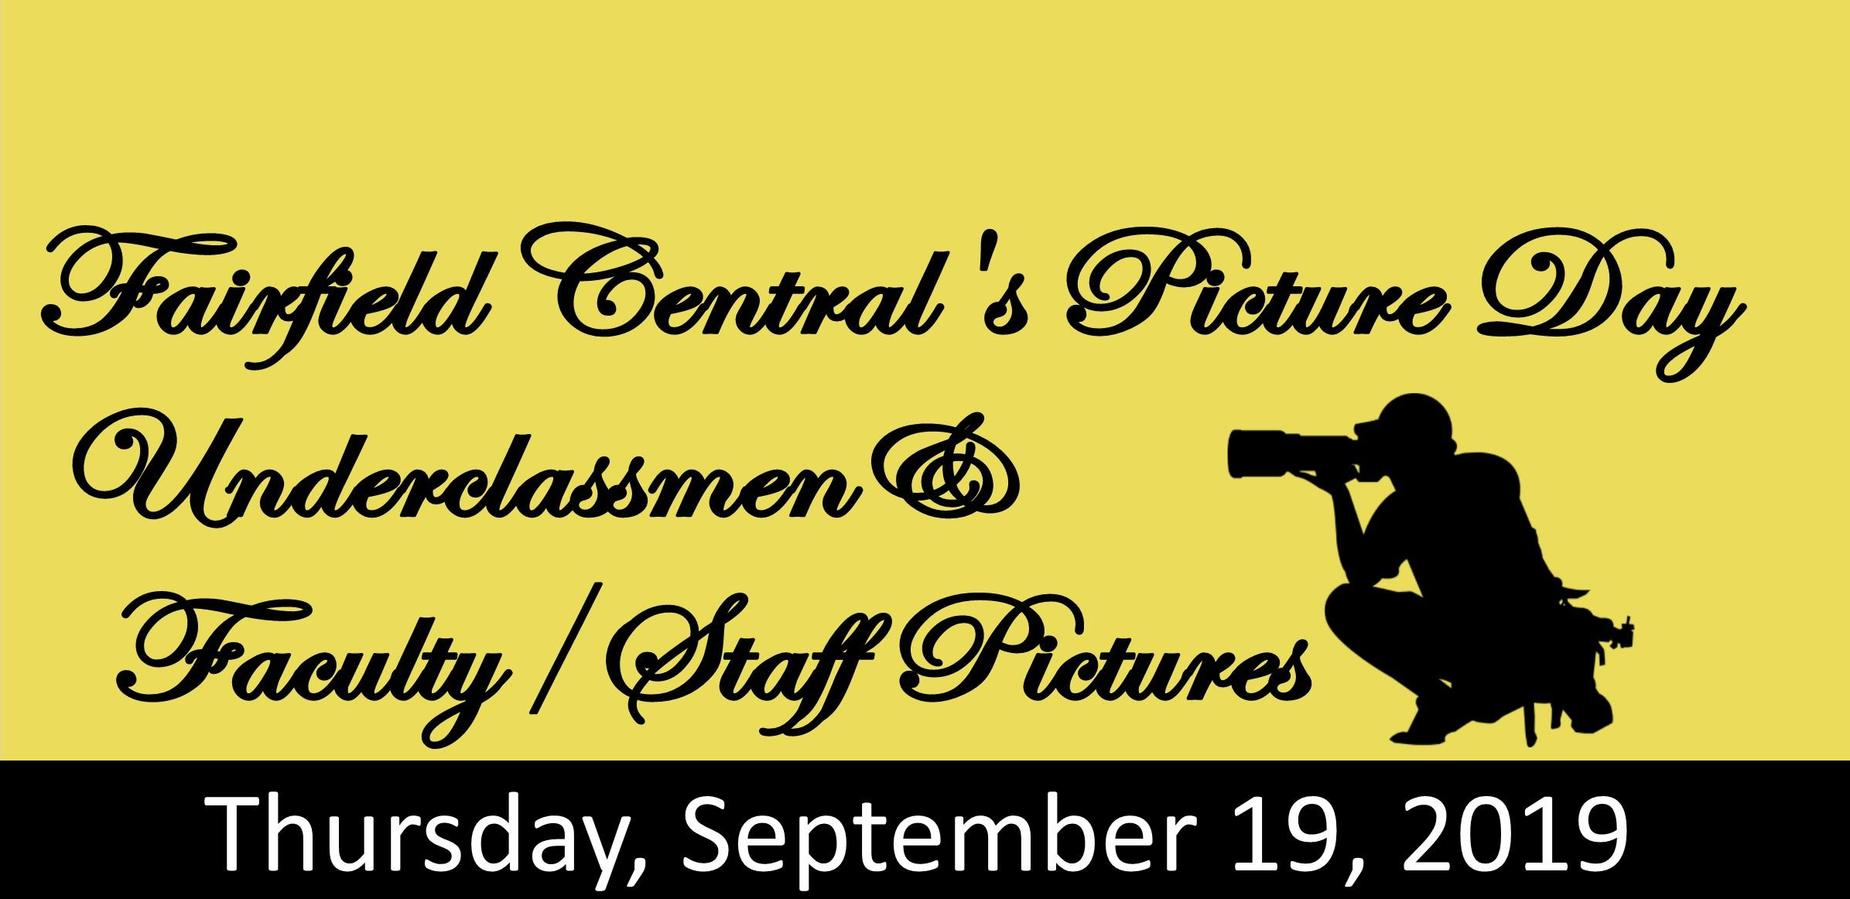 Fairfield Central's Picture Day for underclassmen and Faculty/Staff. Thursday, September 19, 2019.